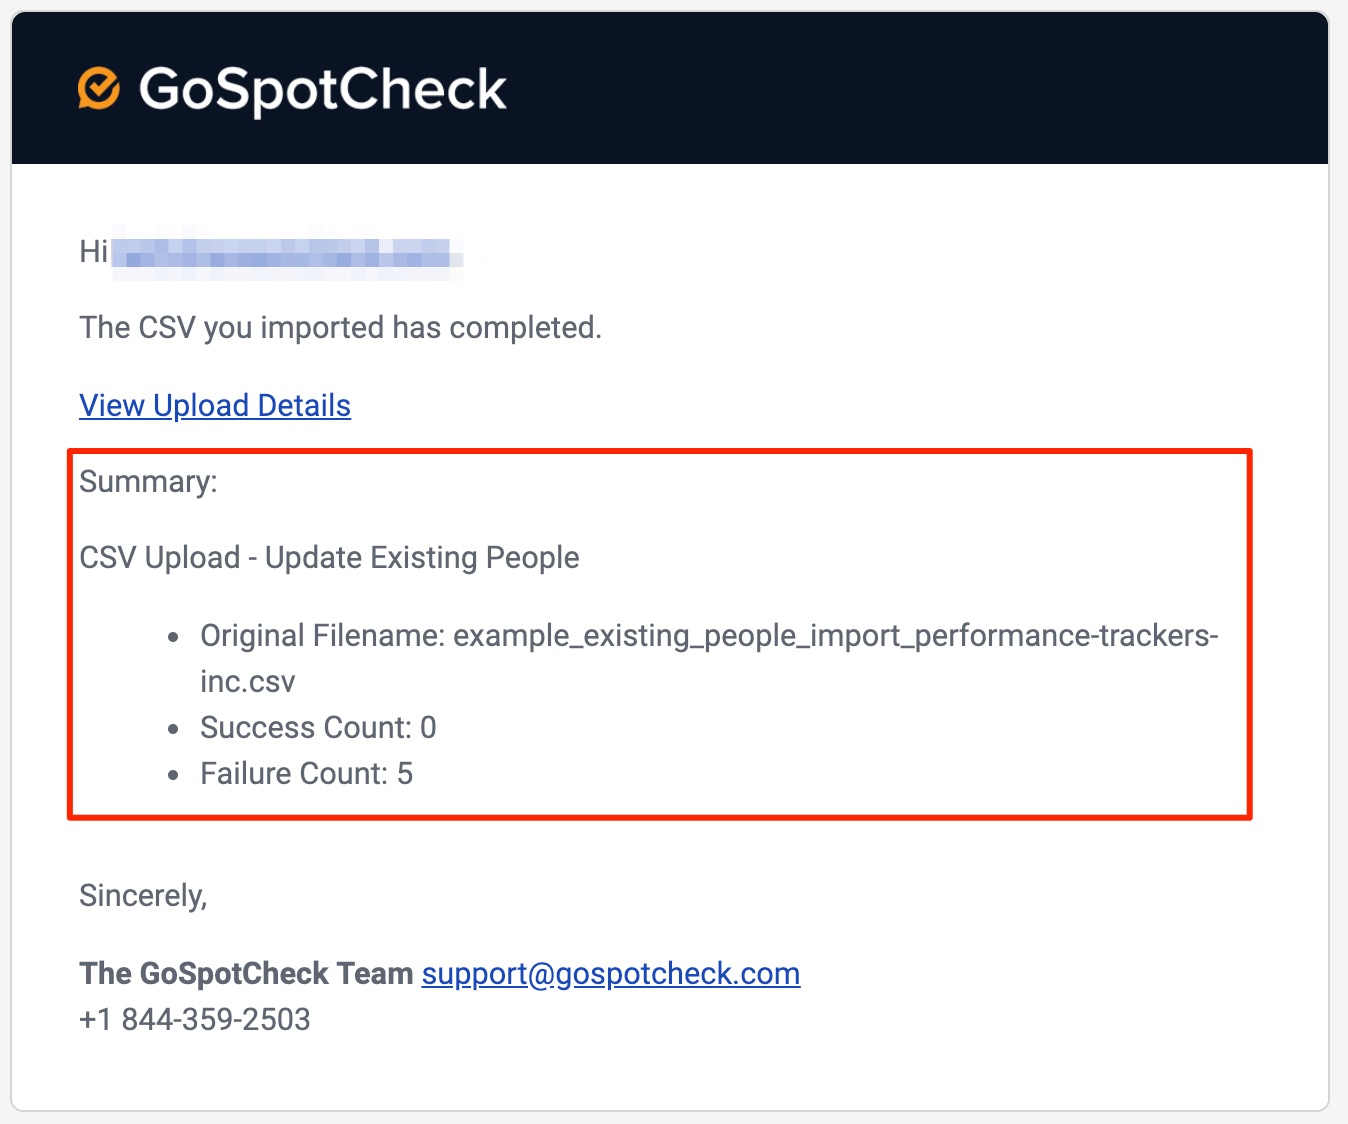 People_CSV_Upload_Completed_for__example_existing_people_import_performance-trackers-inc_csv__-_beth_gospotcheck_com_-_GoSpotCheck_Mail.jpg